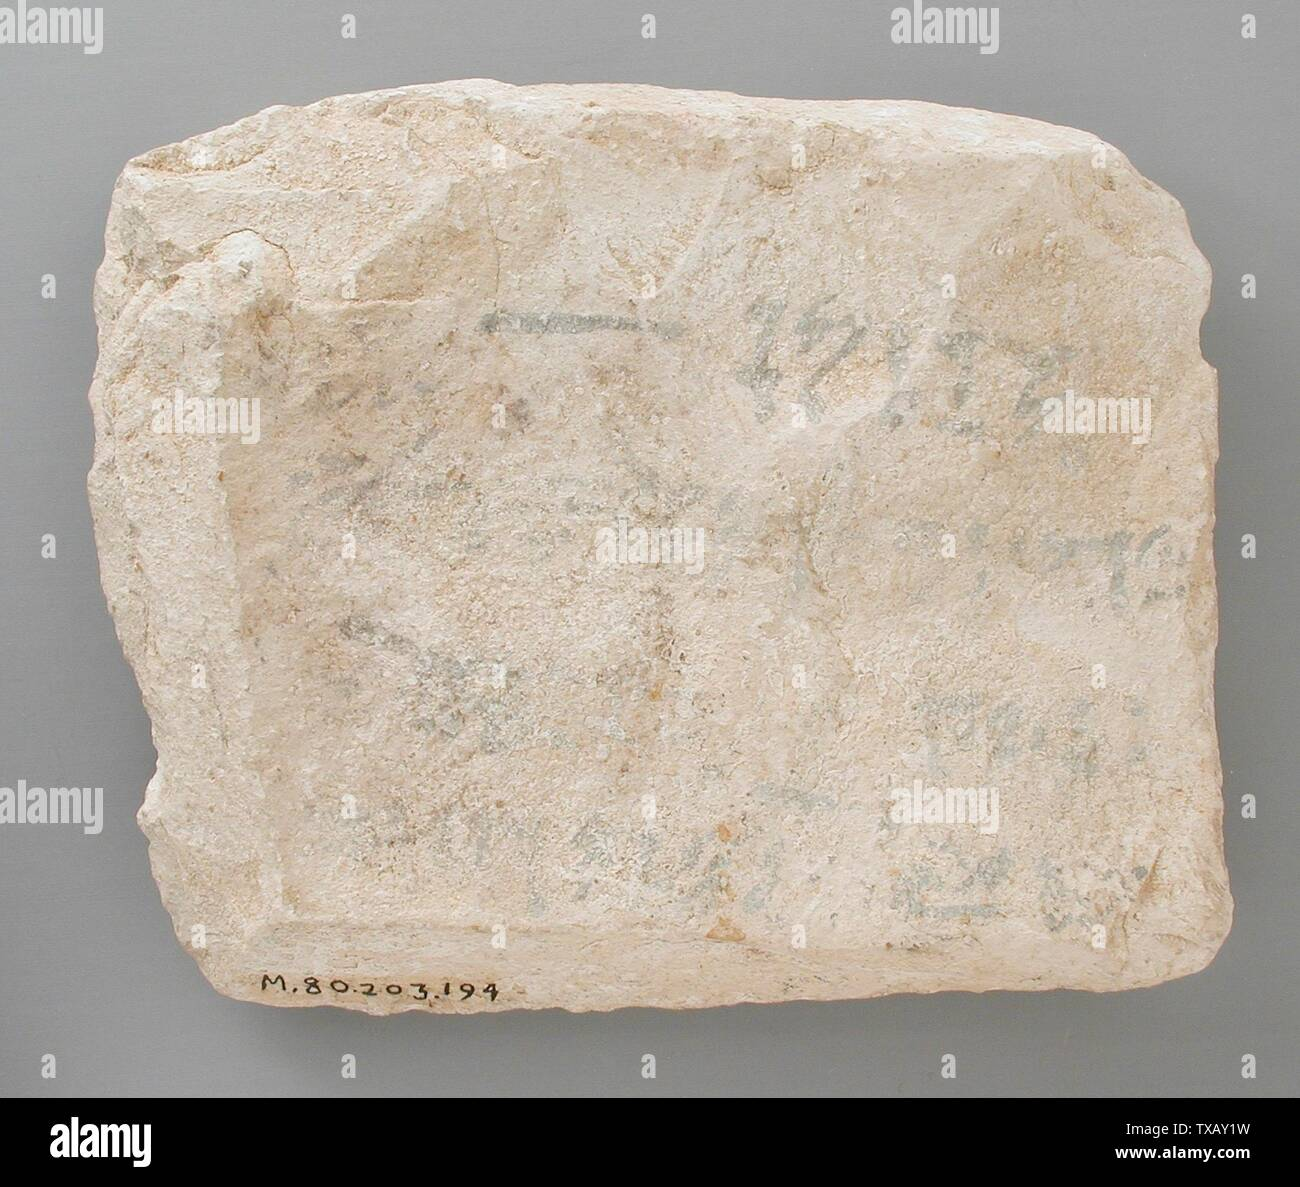 'Ostracon Inscribed on Both Sides with a Letter (image 1 of 2); Egypt, New Kingdom, 19th Dynasty (1315 - 1201 BCE) Tools and Equipment; ostraka Limestone 5 1/8 x 5 11/16 in.  (13 x 14.5 cm) Gift of Carl W. Thomas (M.80.203.194) Egyptian Art; 19th Dynasty (1315 - 1201 BCE); ' - Stock Image